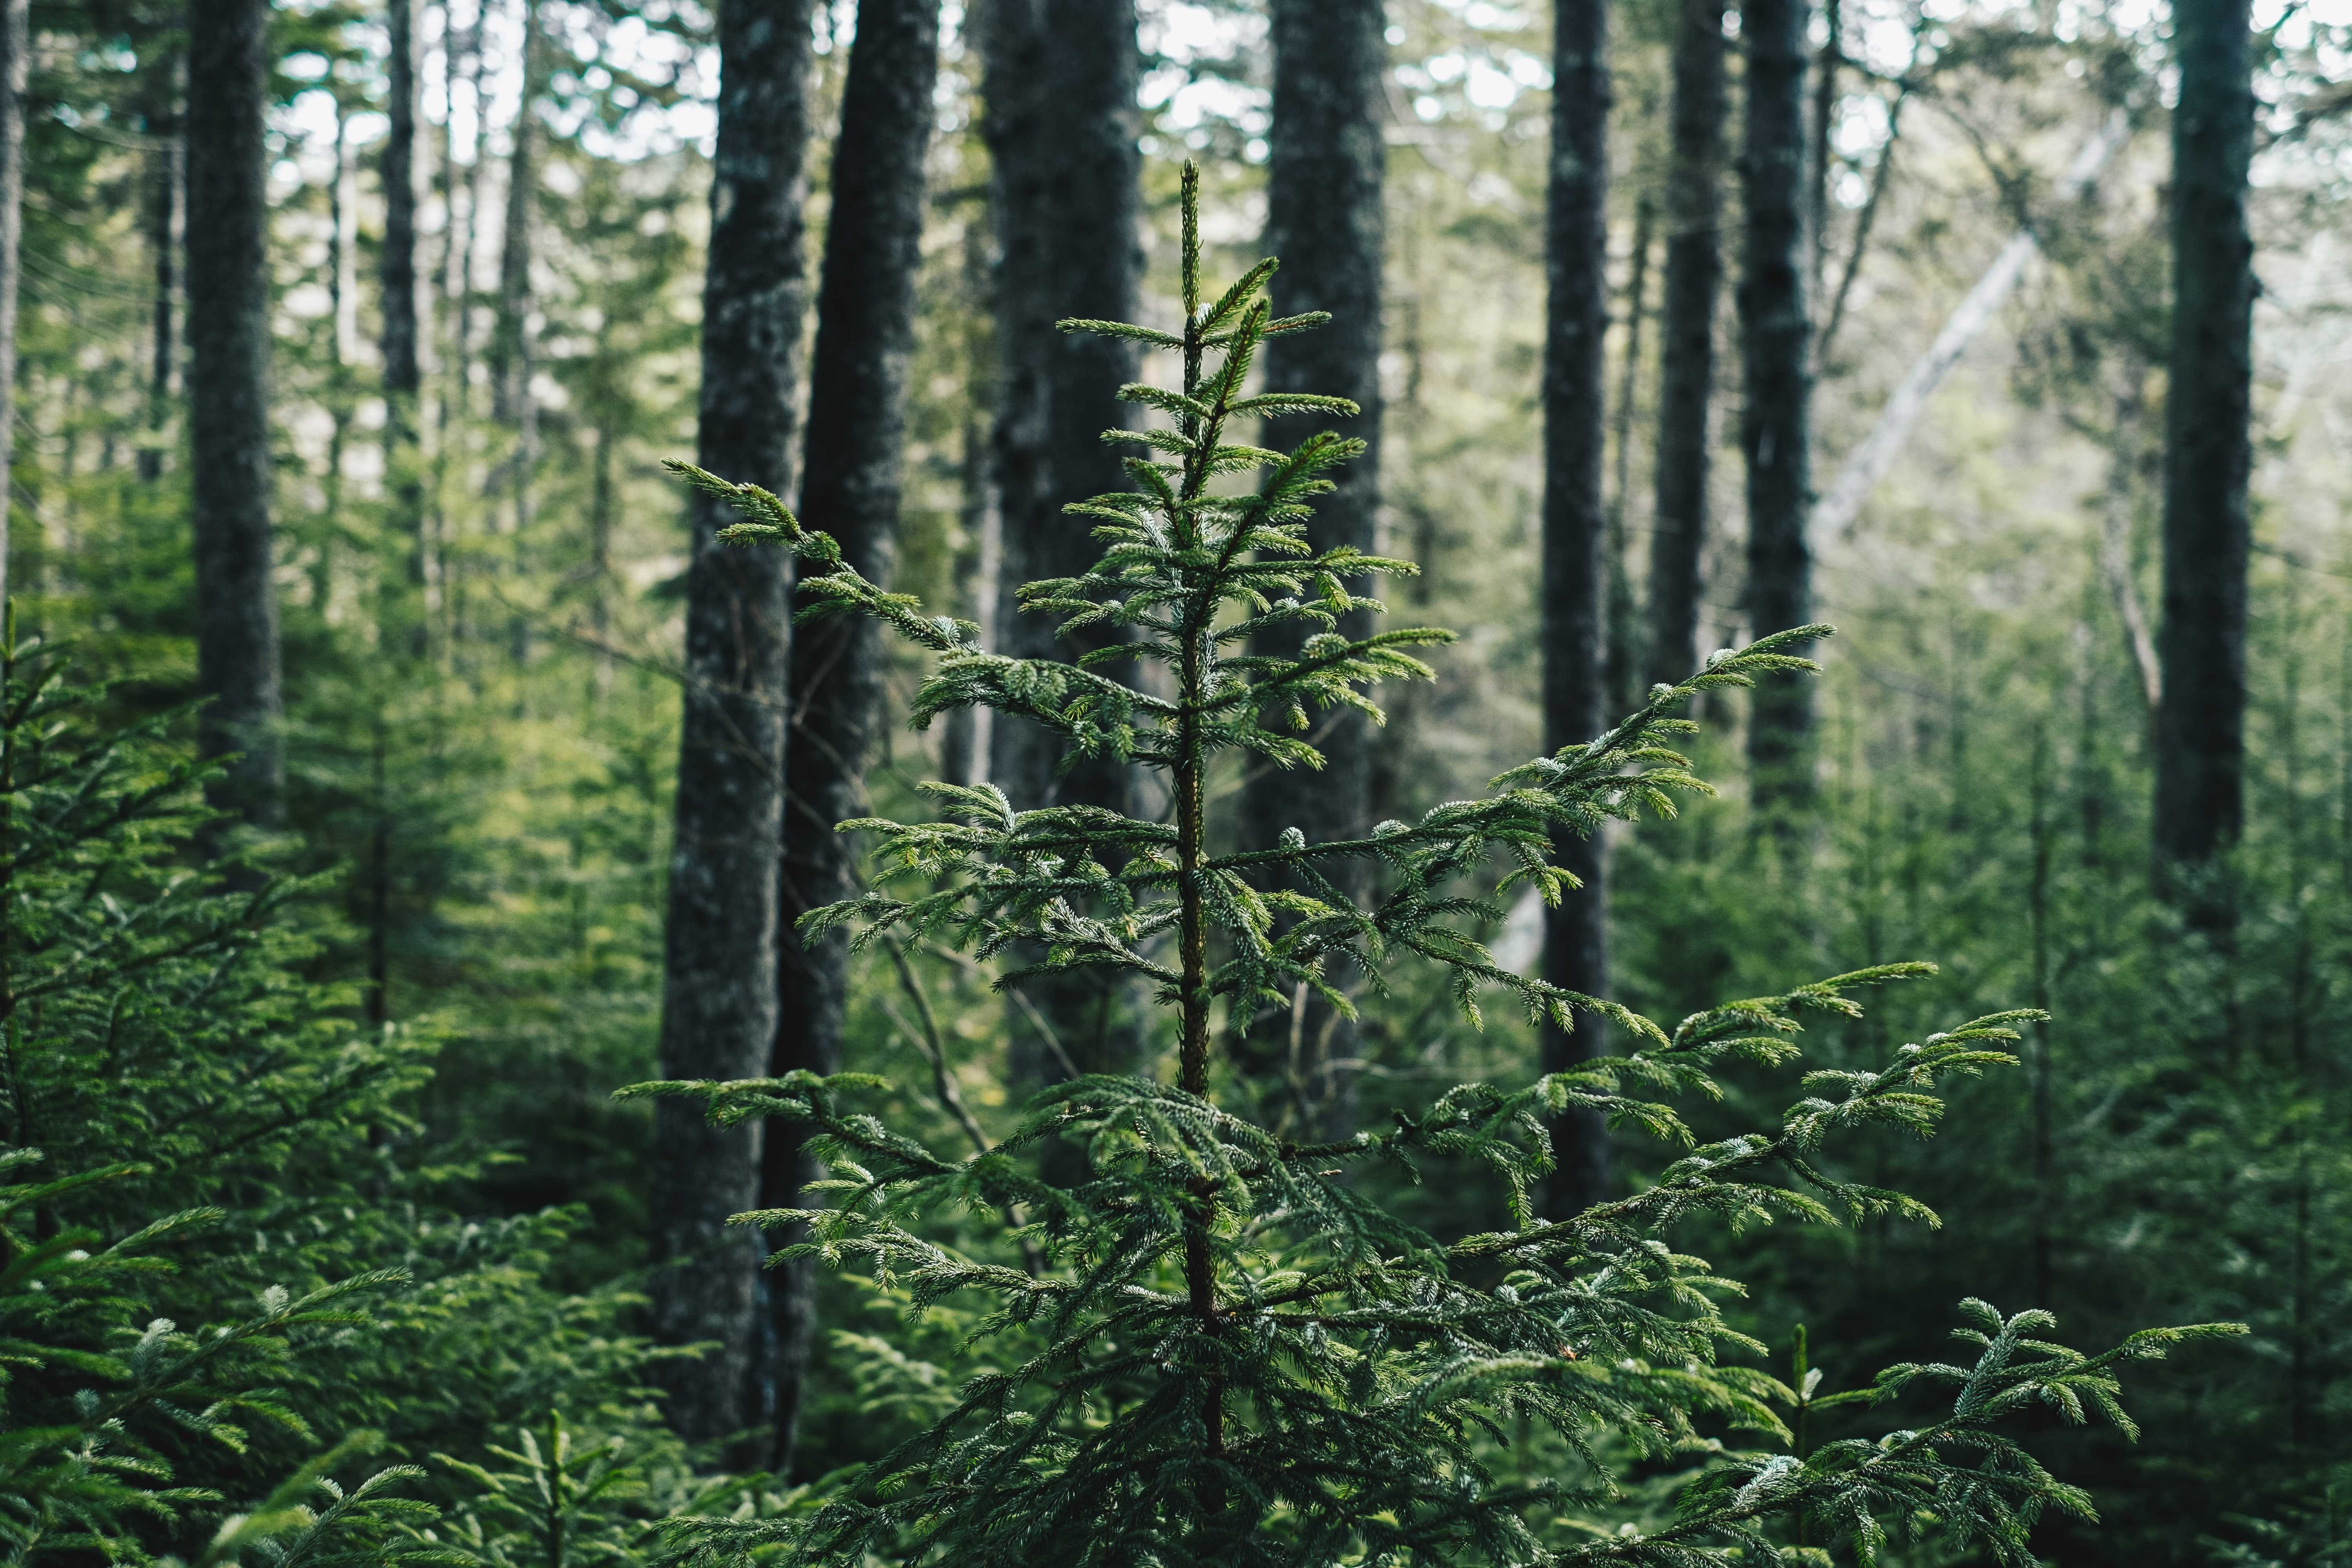 evergreen content gets it's name from evergreen trees, and is a great way to ensure long lasting content for your site.